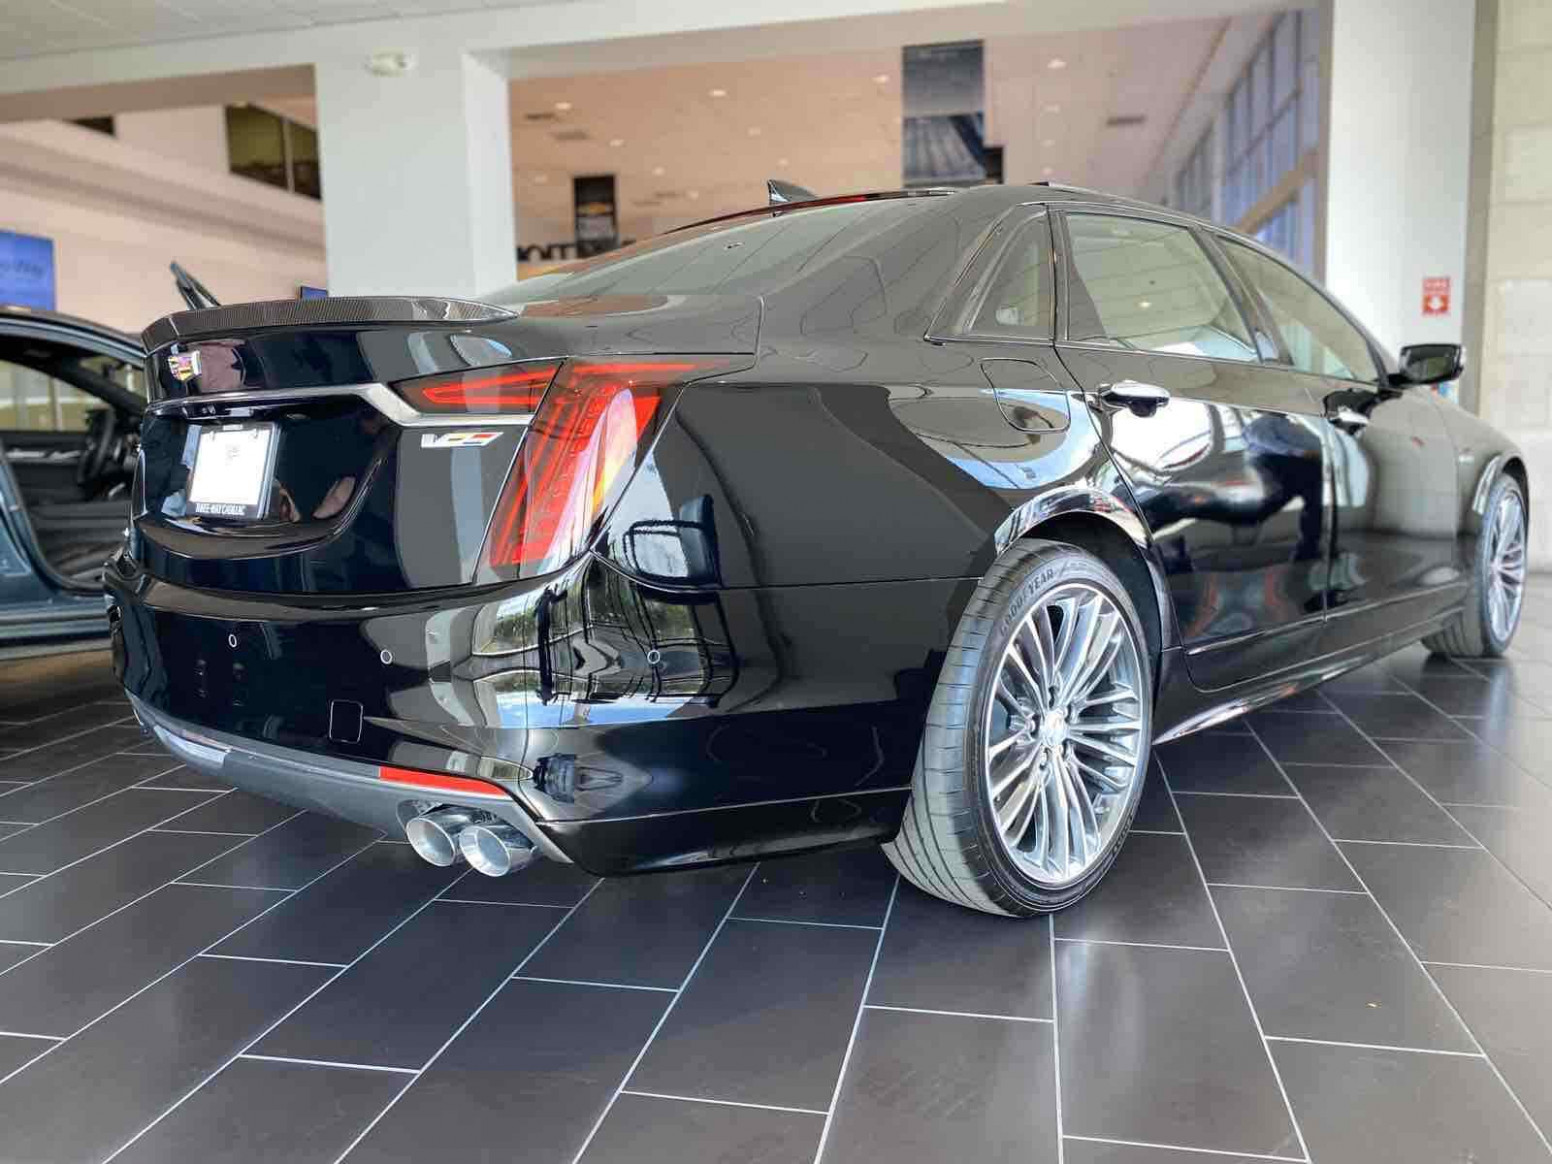 Cadillac CT8 8 for sale. Exterior color : Black